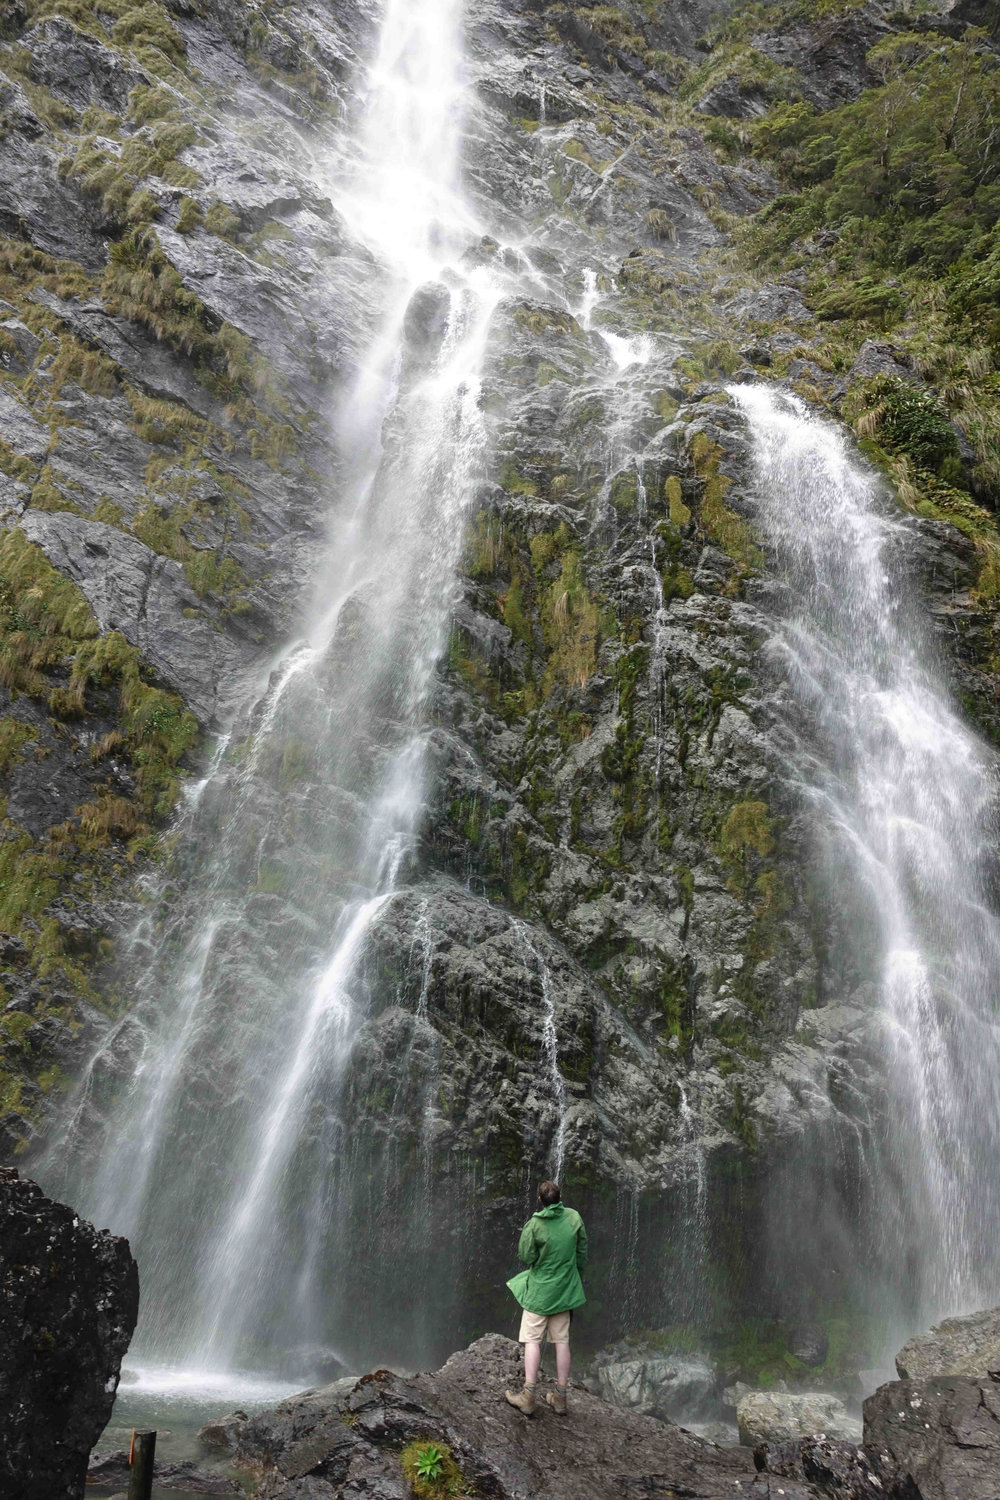 Another mighty waterfall on this holiday - the Earland Falls.